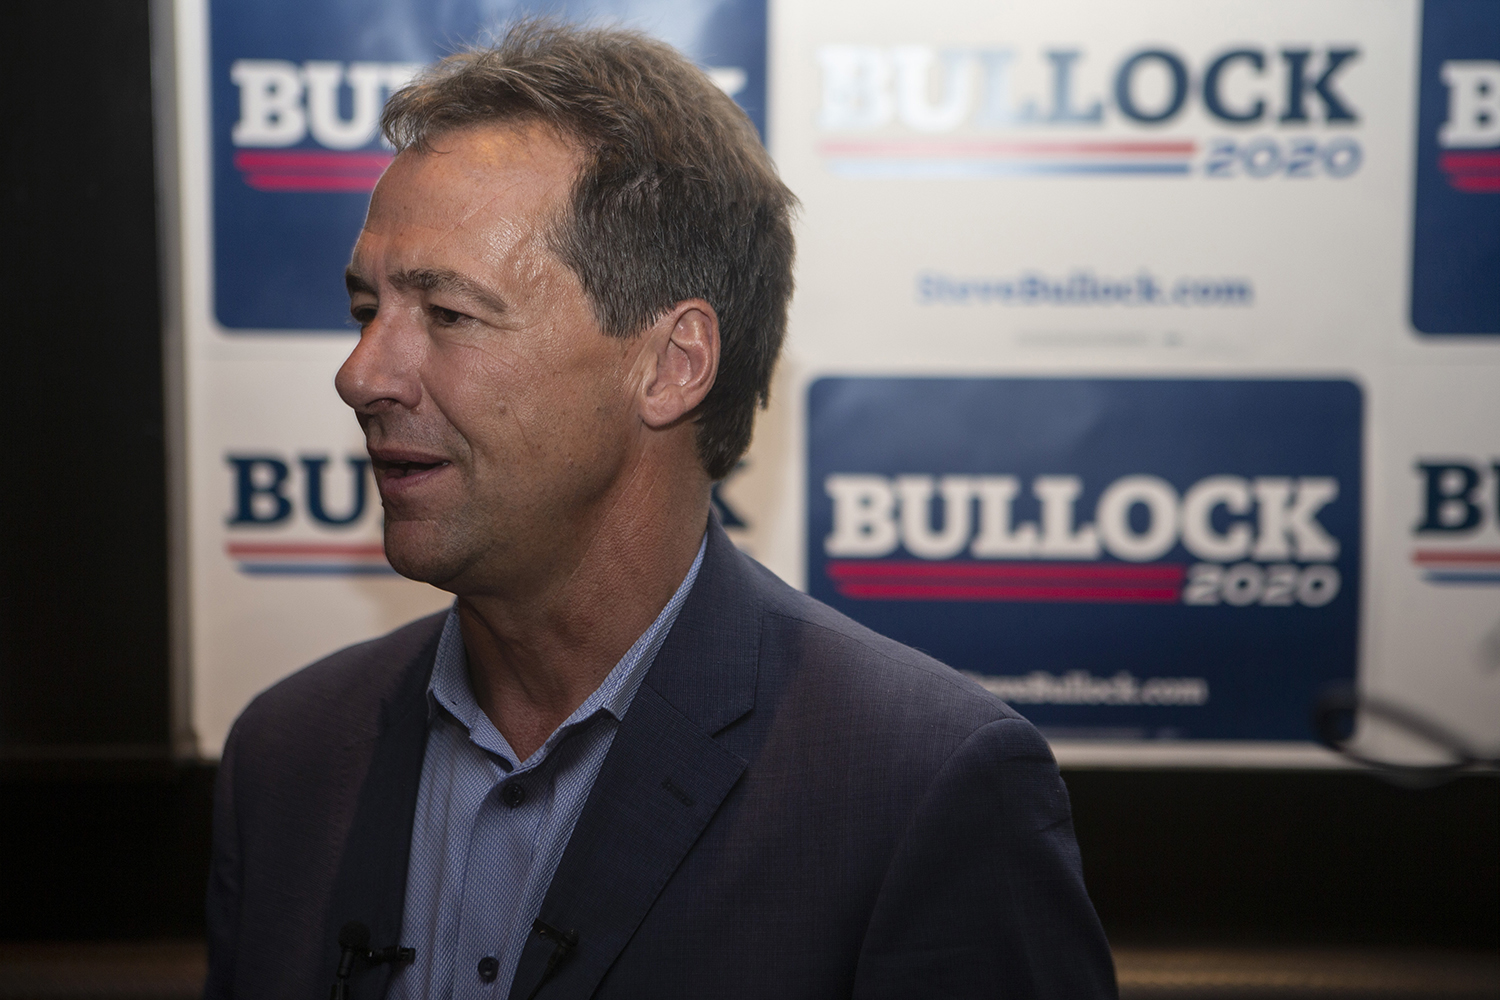 Governor of Montana Steve Bullock addresses members of the press during his meet and greet in Blackstone on July 10, 2019. (Katie Goodale/The Daily Iowan)